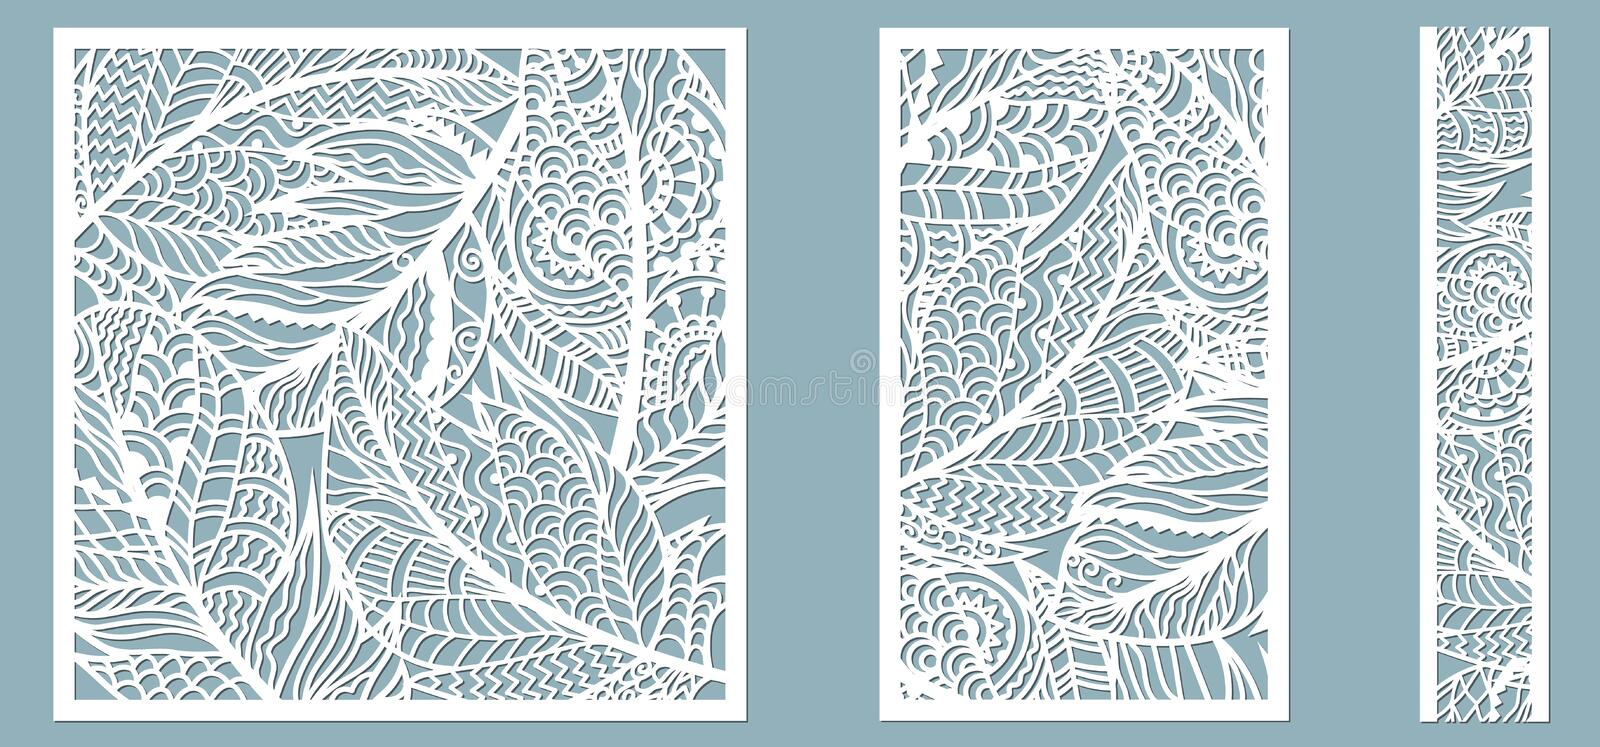 Pattern frame with feathers. Line, rectangle, square as a pattern of feathers. Template for laser, plotter cutting vector illustration